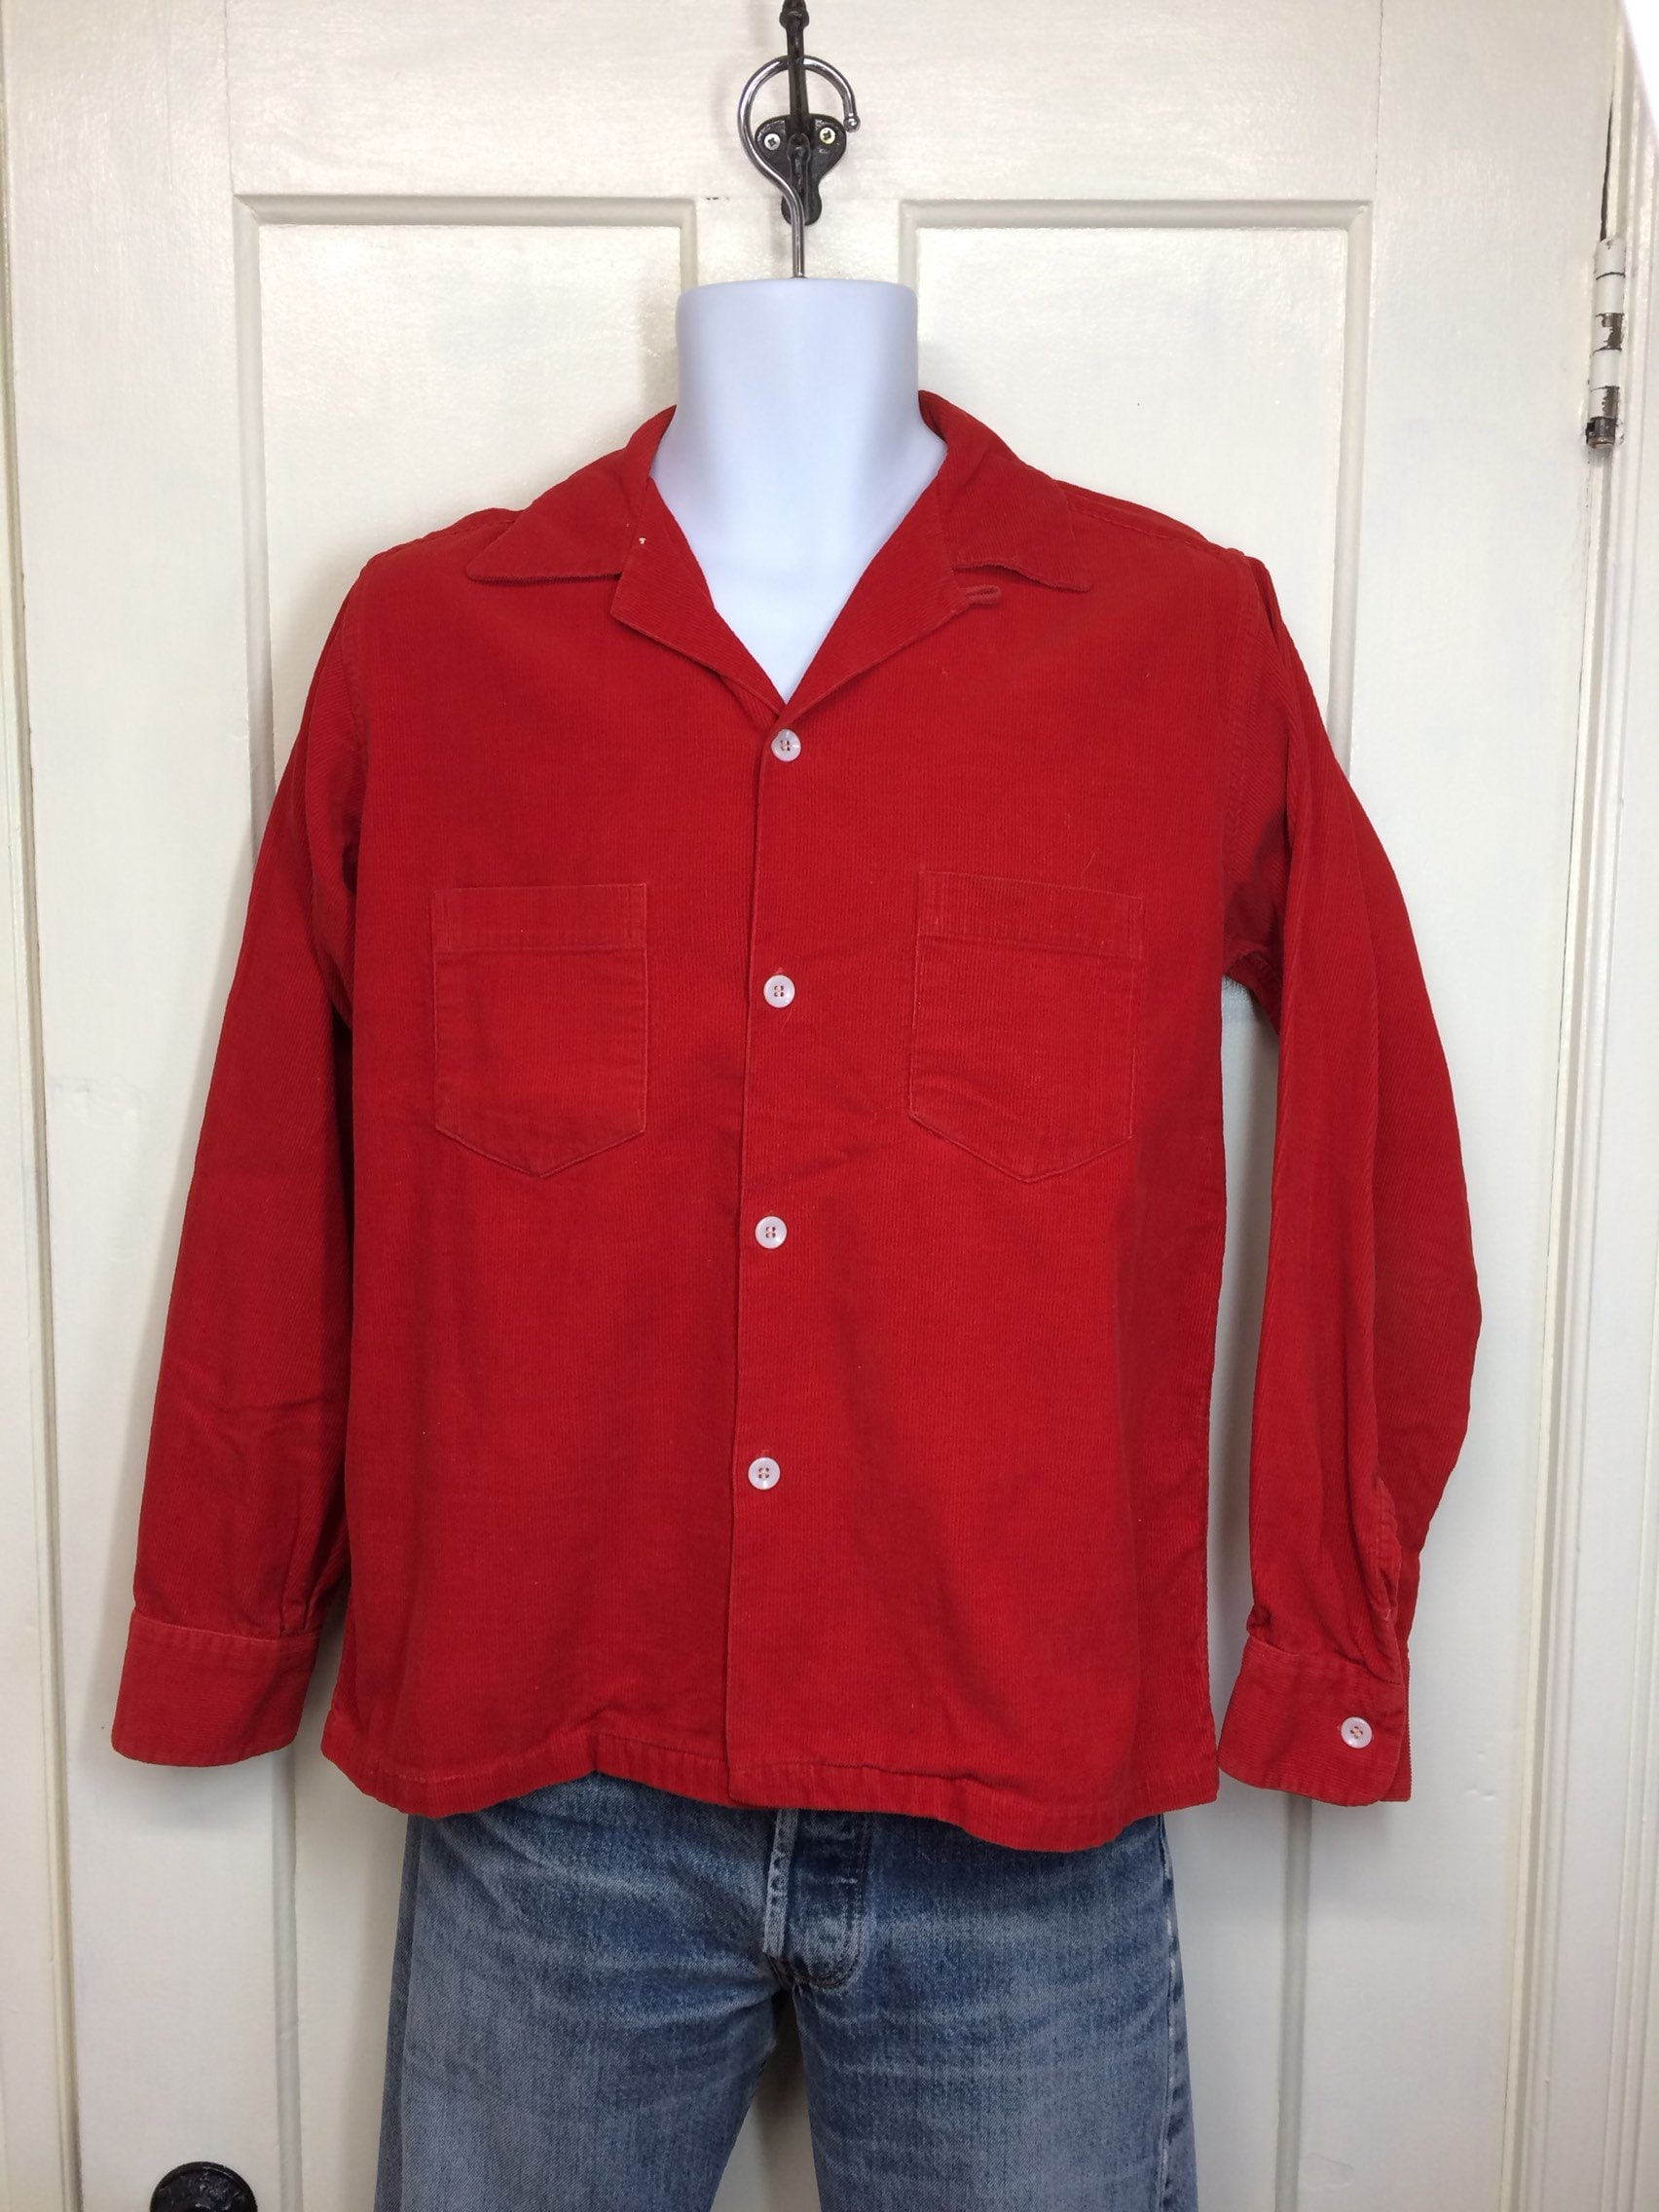 1950s blood orange corduroy shirt